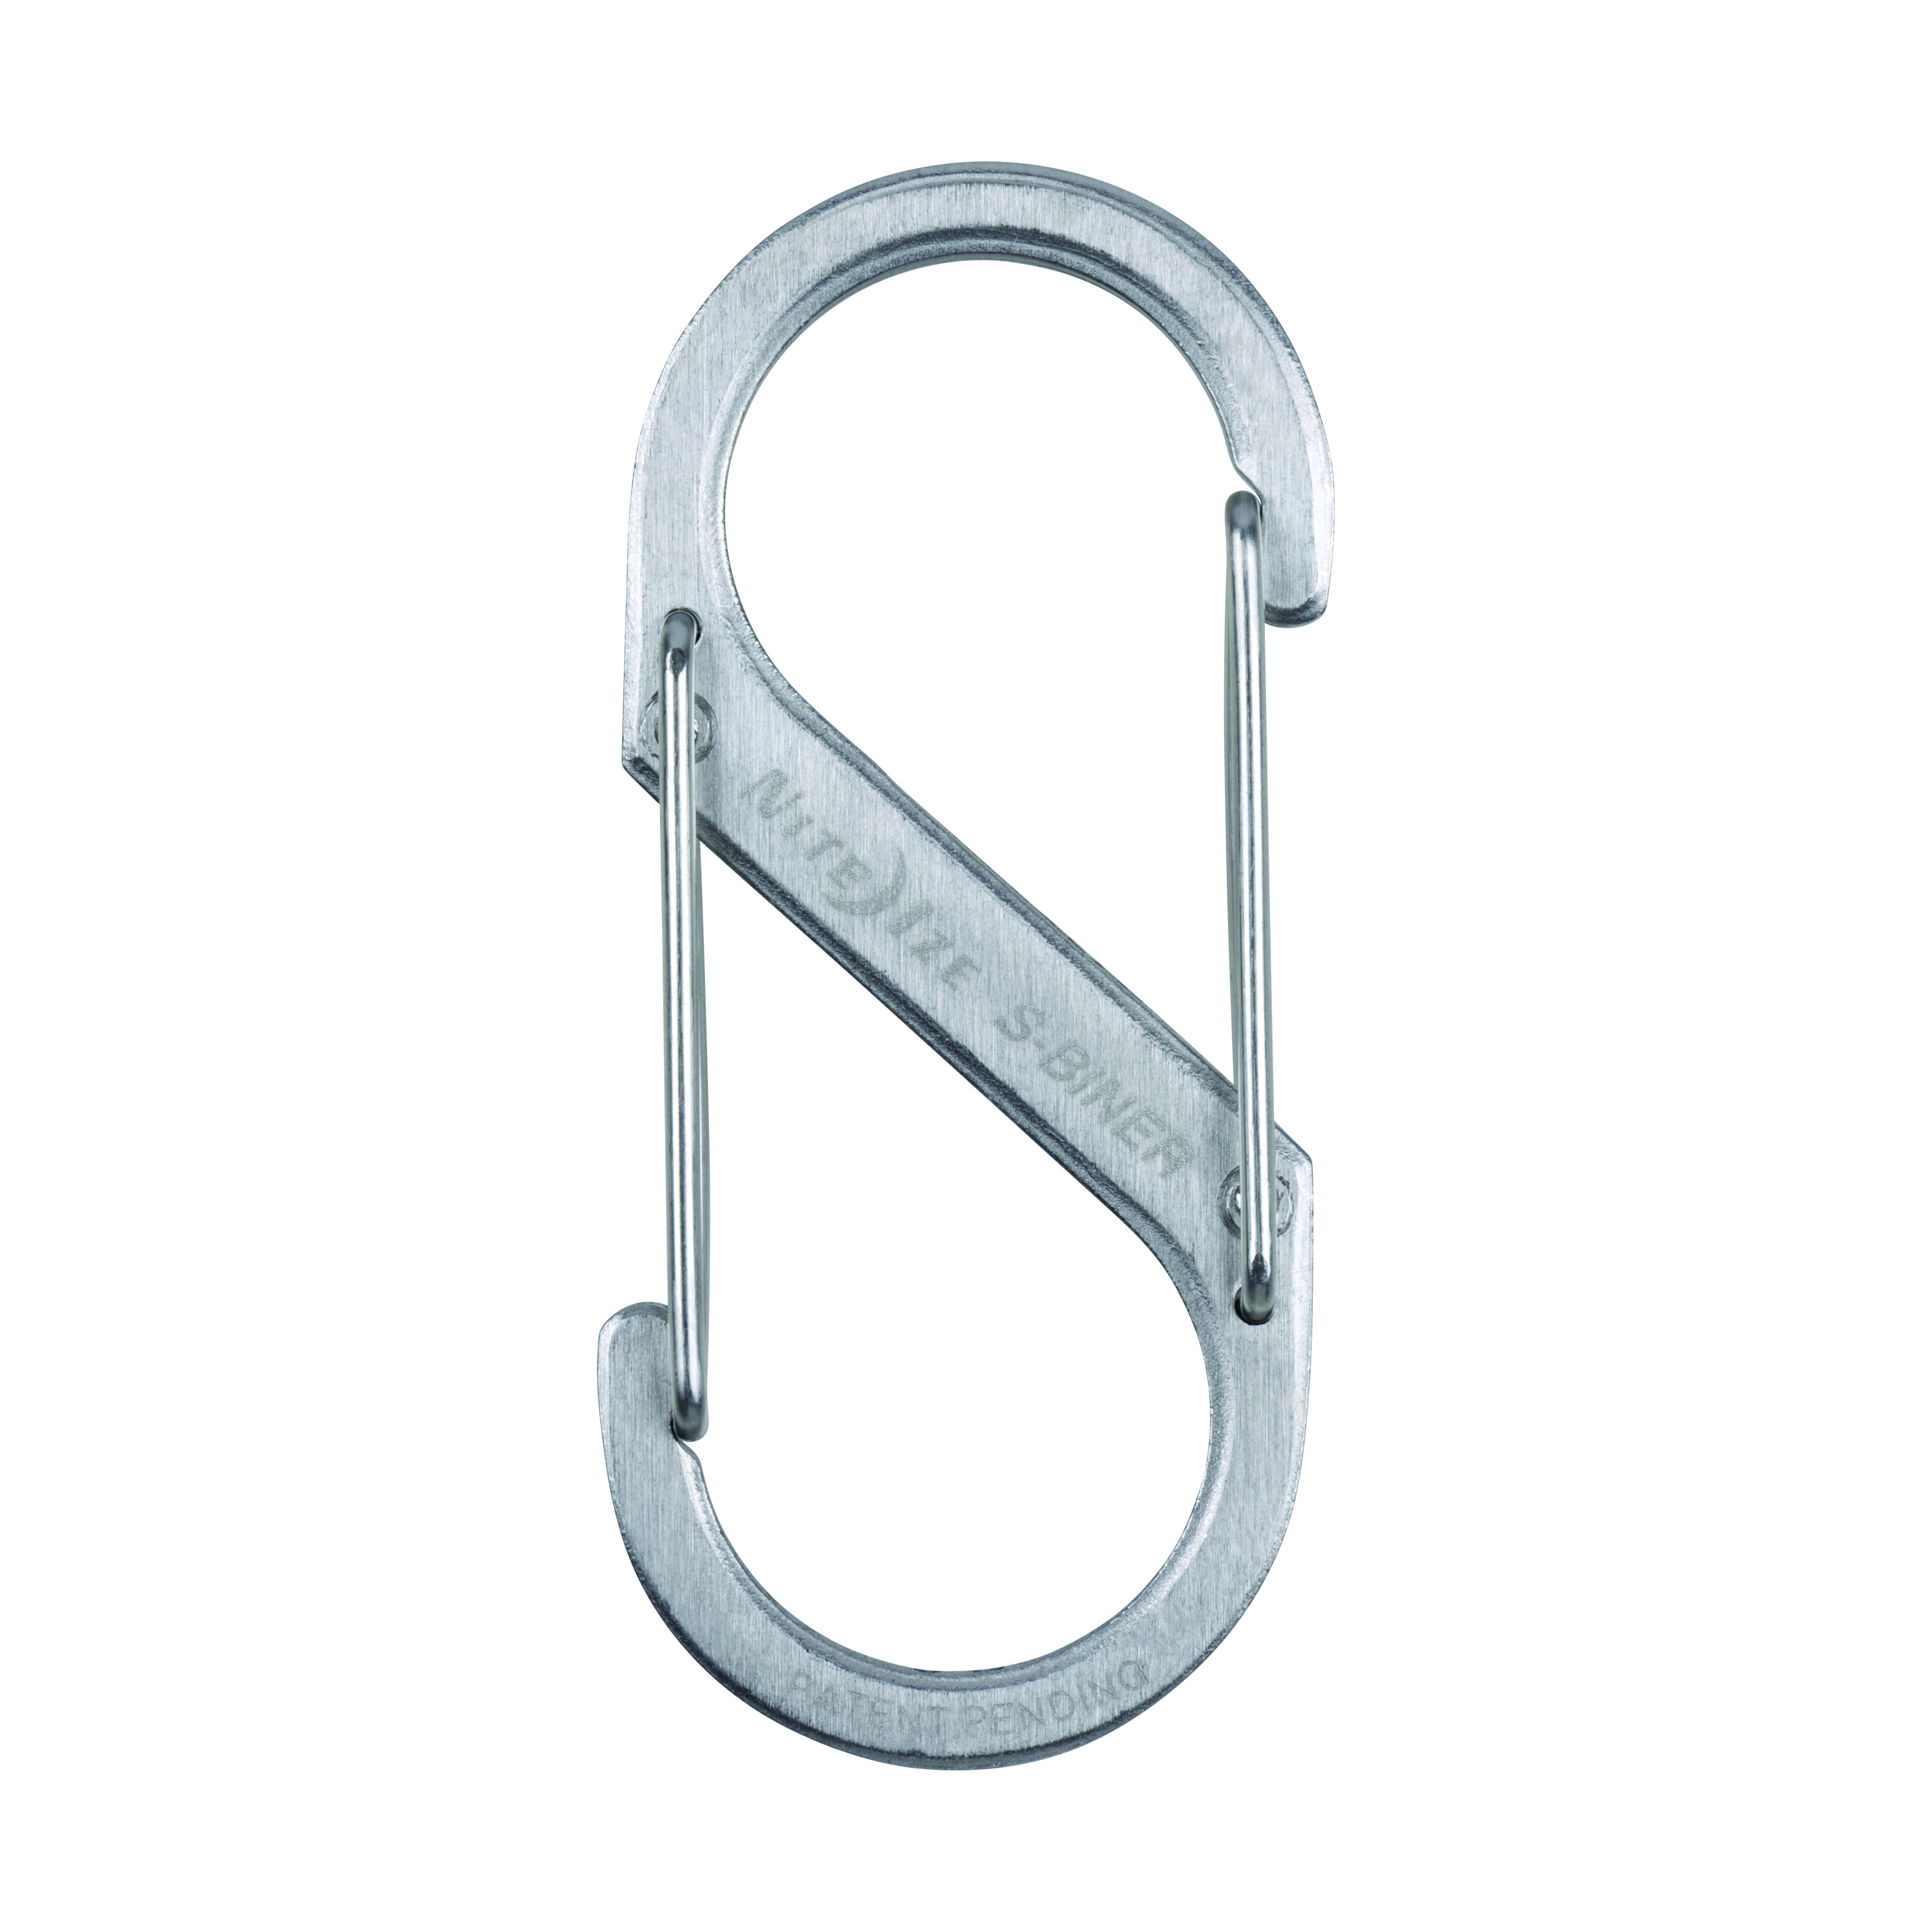 SB3-03-11 - NITE IZE S-Biner Stainless Steel Double Gated Carabiner #3 - Stainless